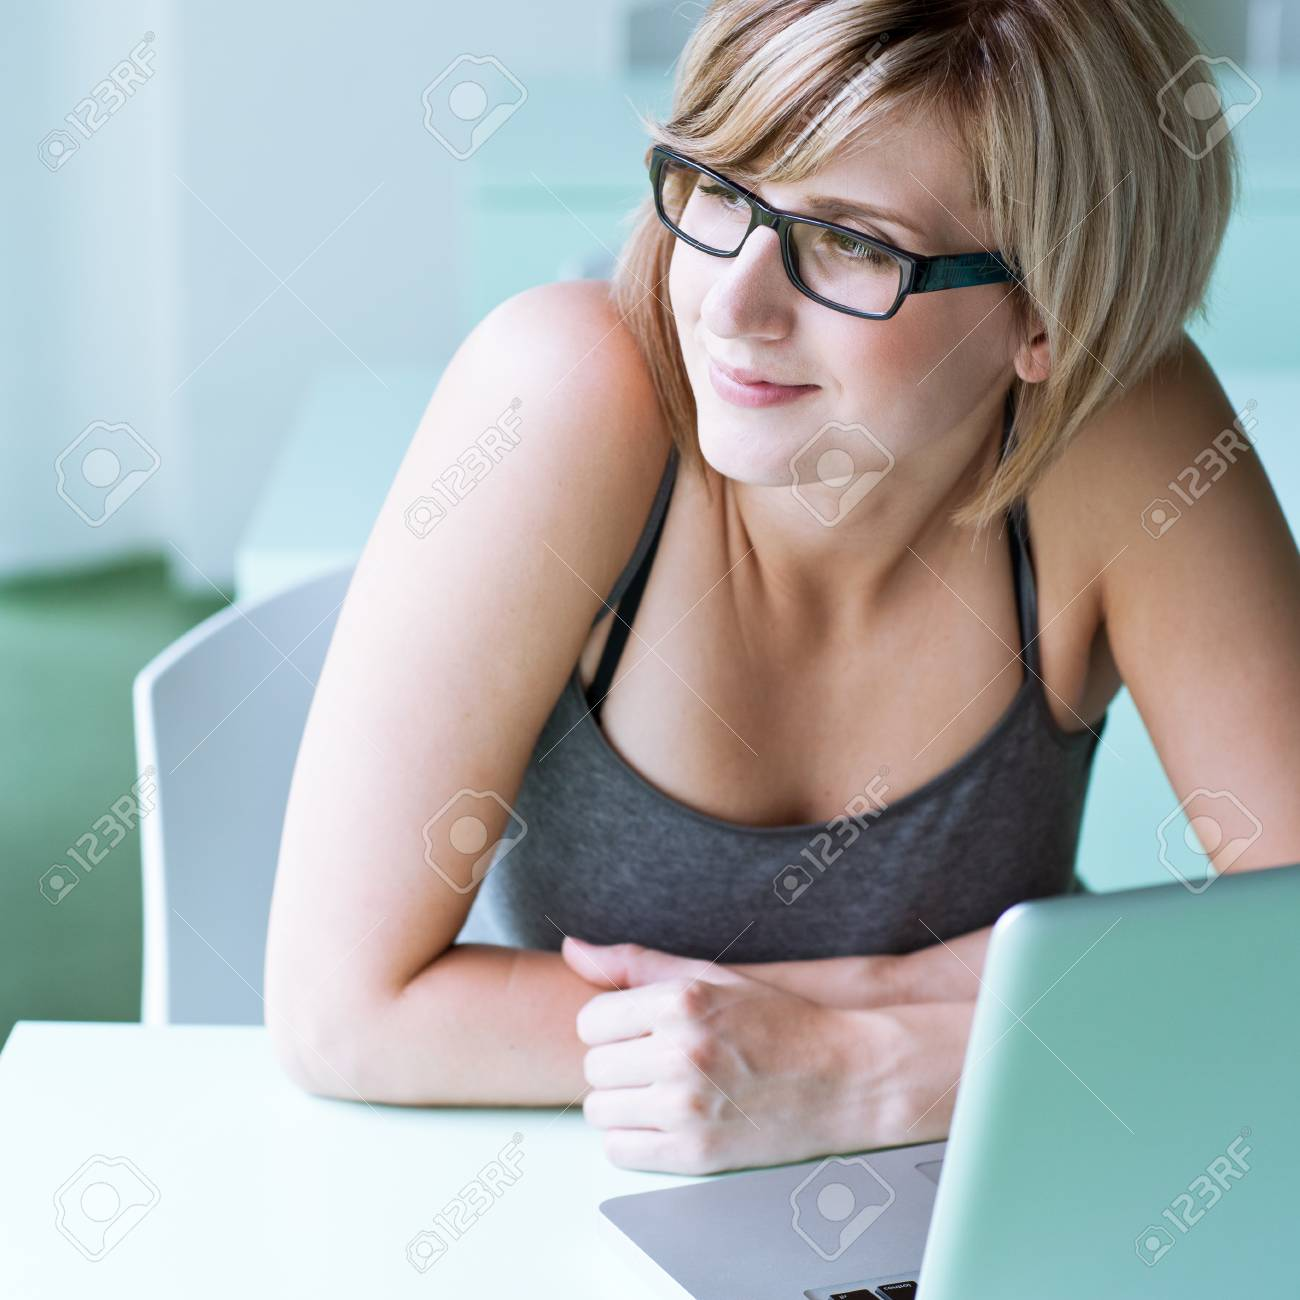 Portrait of a young woman pensively looking out of the window while sitting in front of her laptop Stock Photo - 10895283